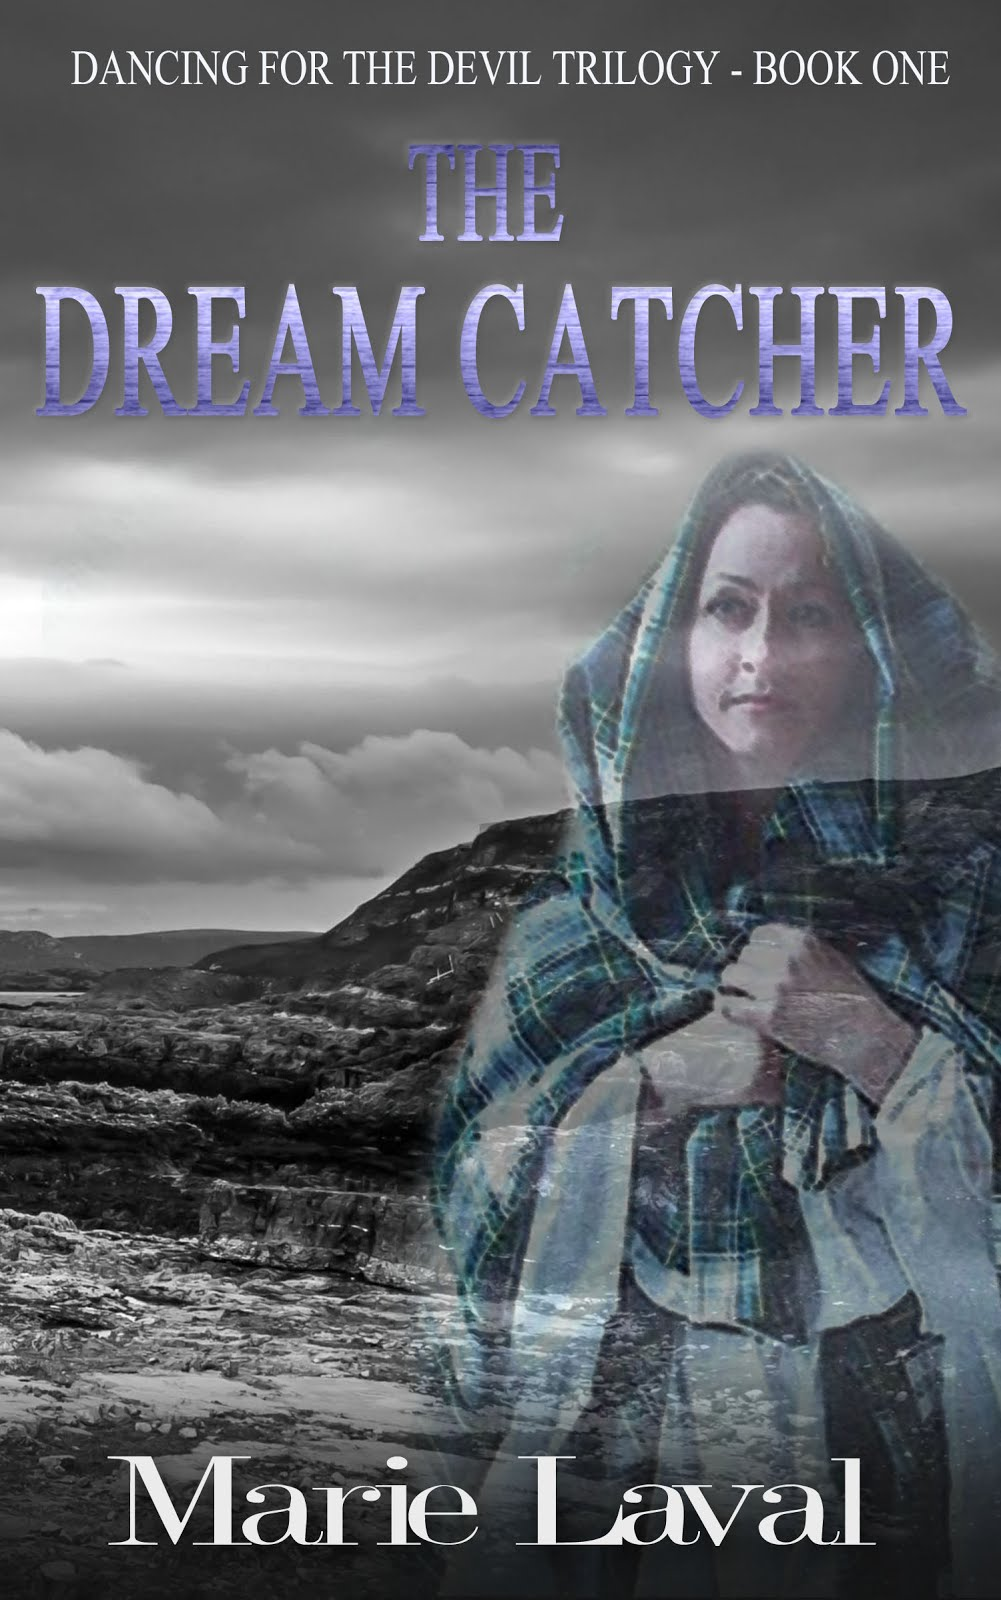 THE DREAM CATCHER, Book 1 of the Dancing for the Devil Trilogy